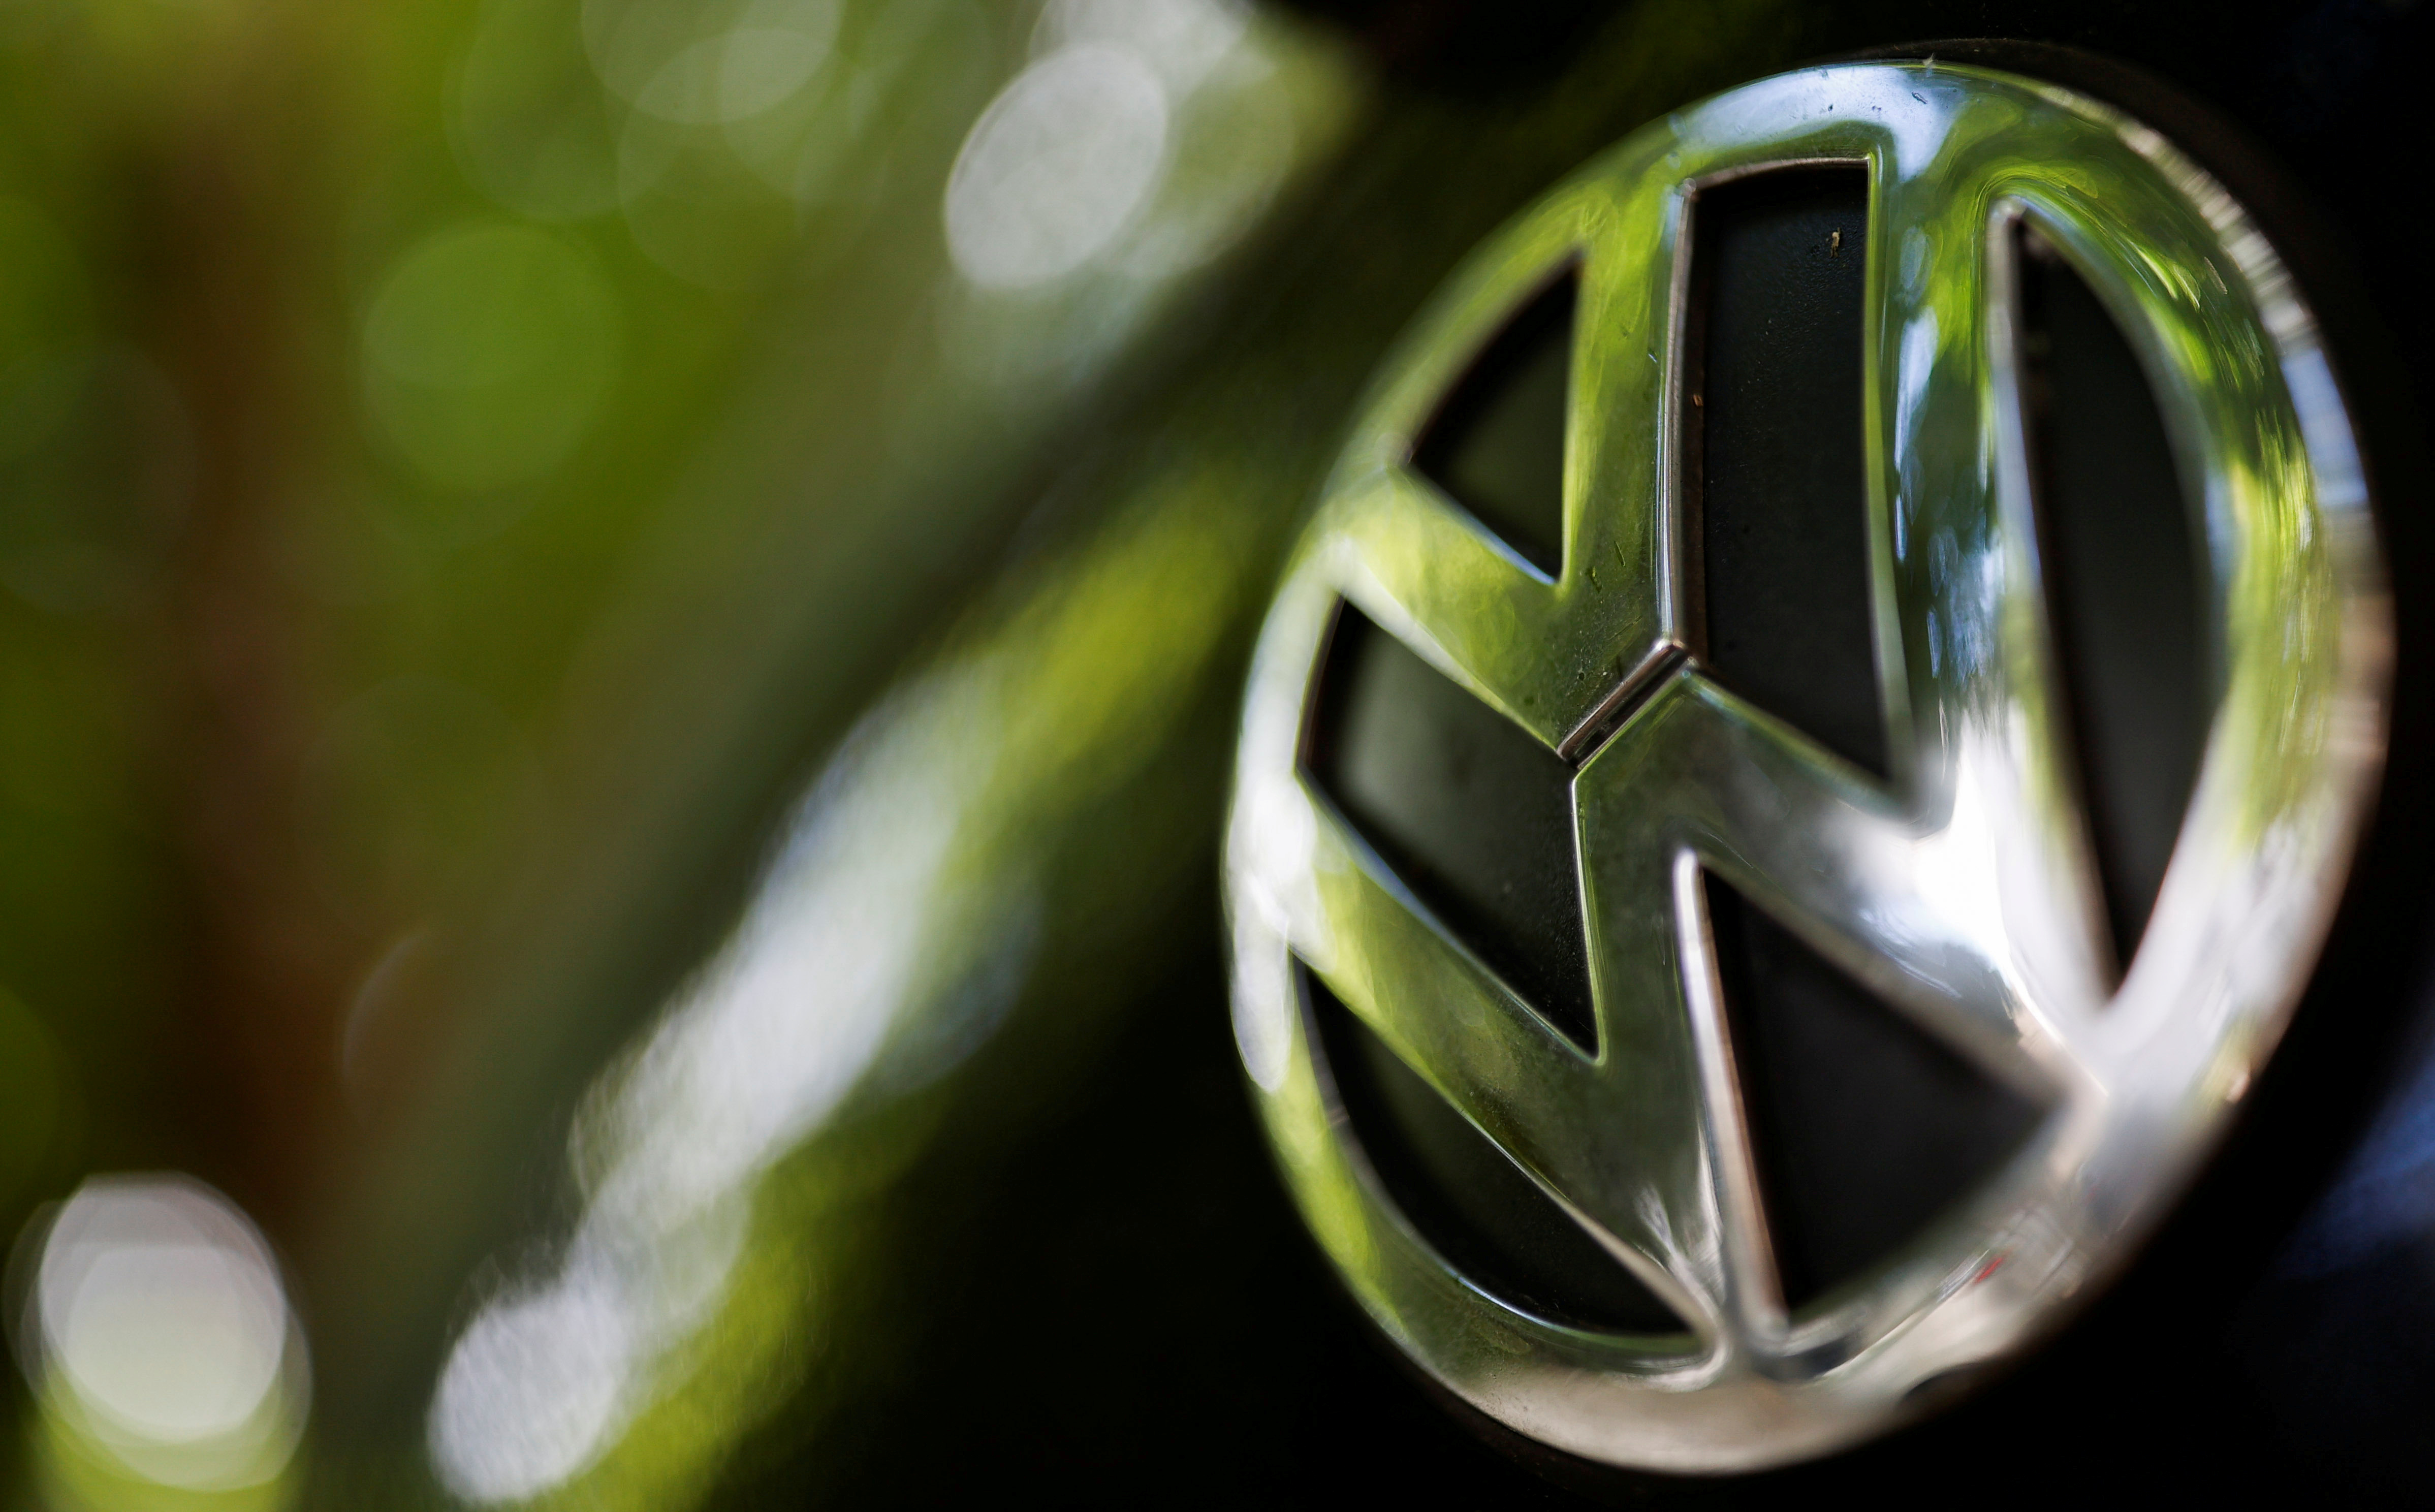 A logo of German carmaker Volkswagen is seen on a car parked on a street in Paris, France, July 9, 2020. REUTERS/Christian Hartmann/File Photo